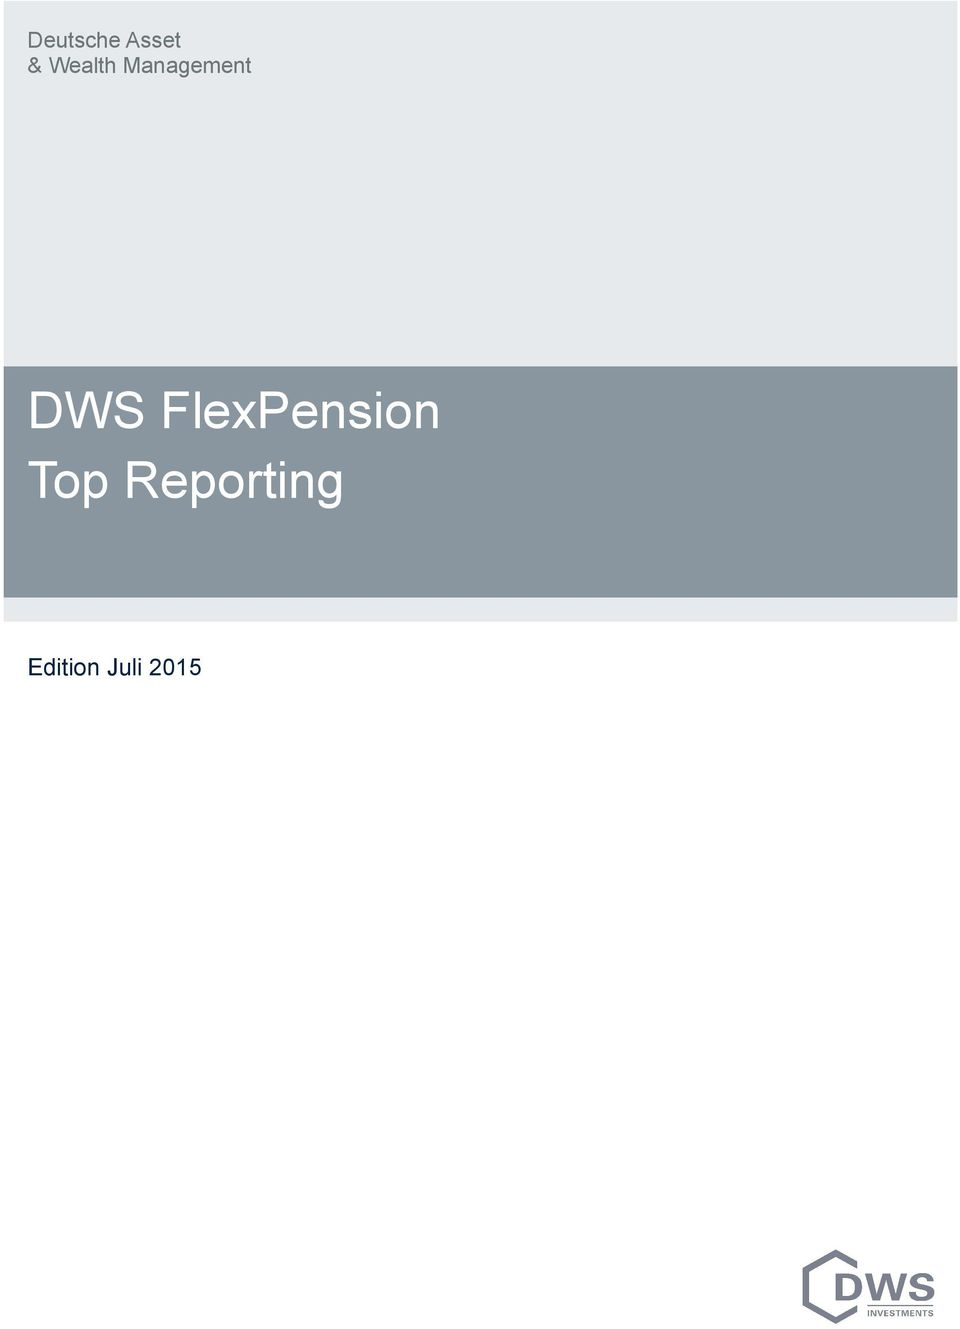 DWS FlexPension